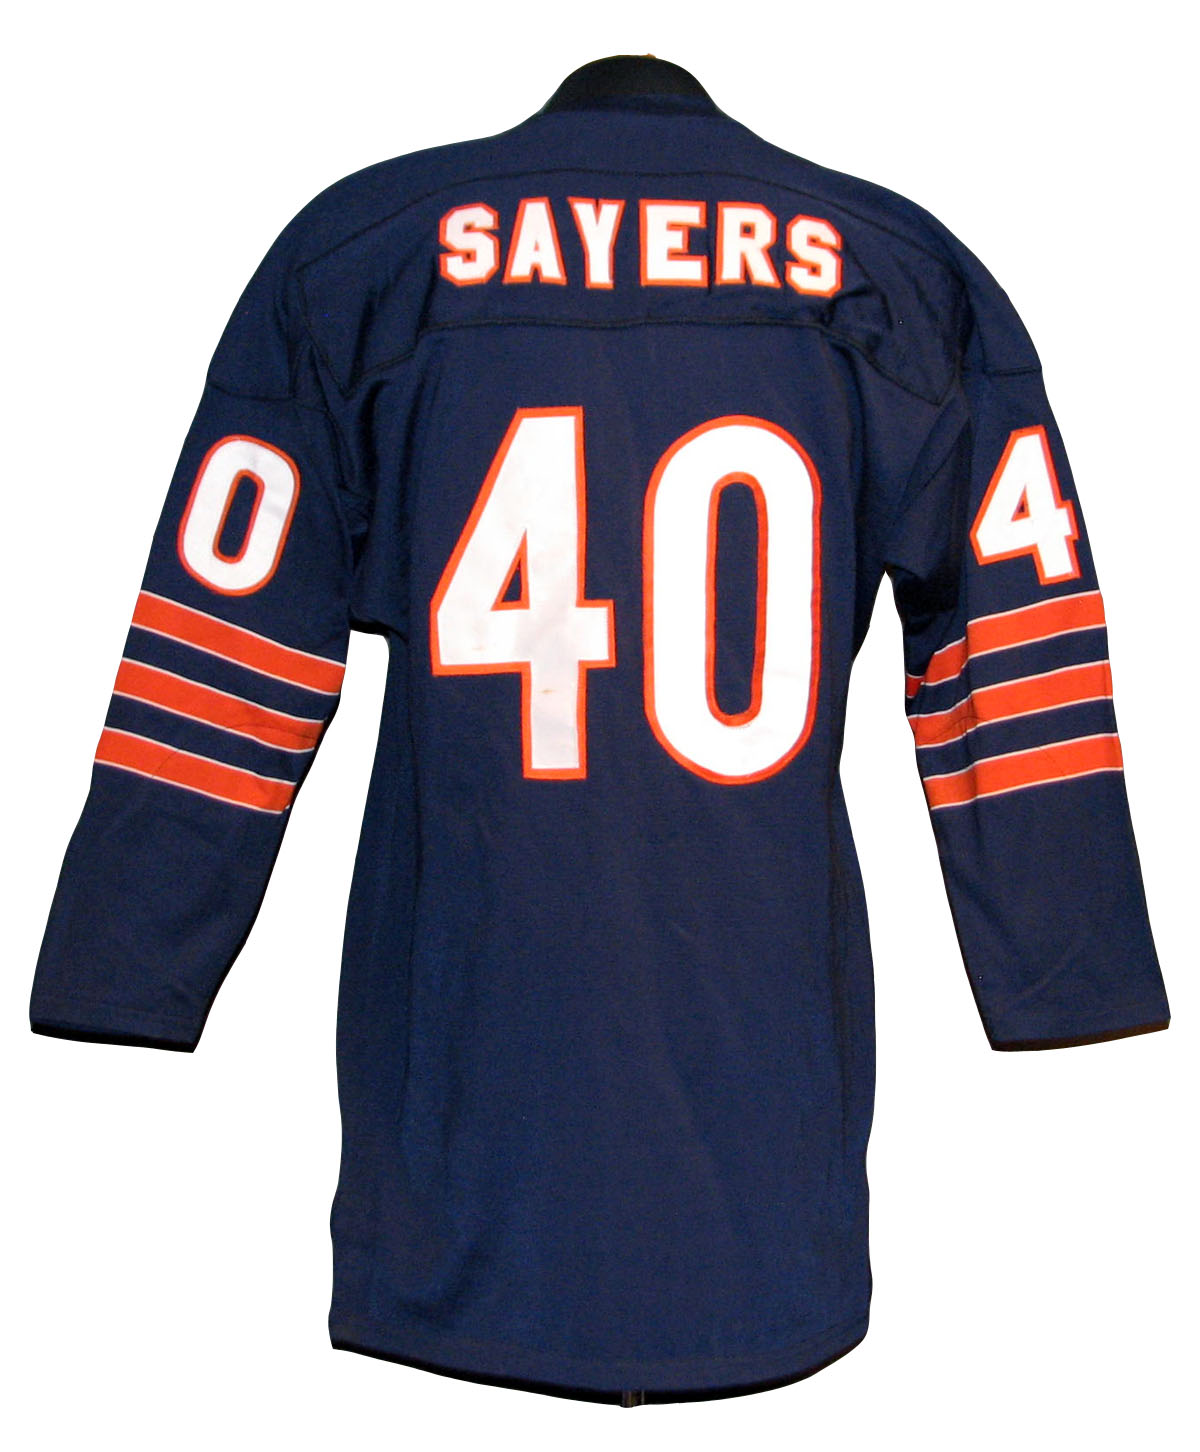 55edd0269 ... 1970-71 Gale Sayers Chicago Bears Team-Issued Potentially Game Worn  Jersey ...